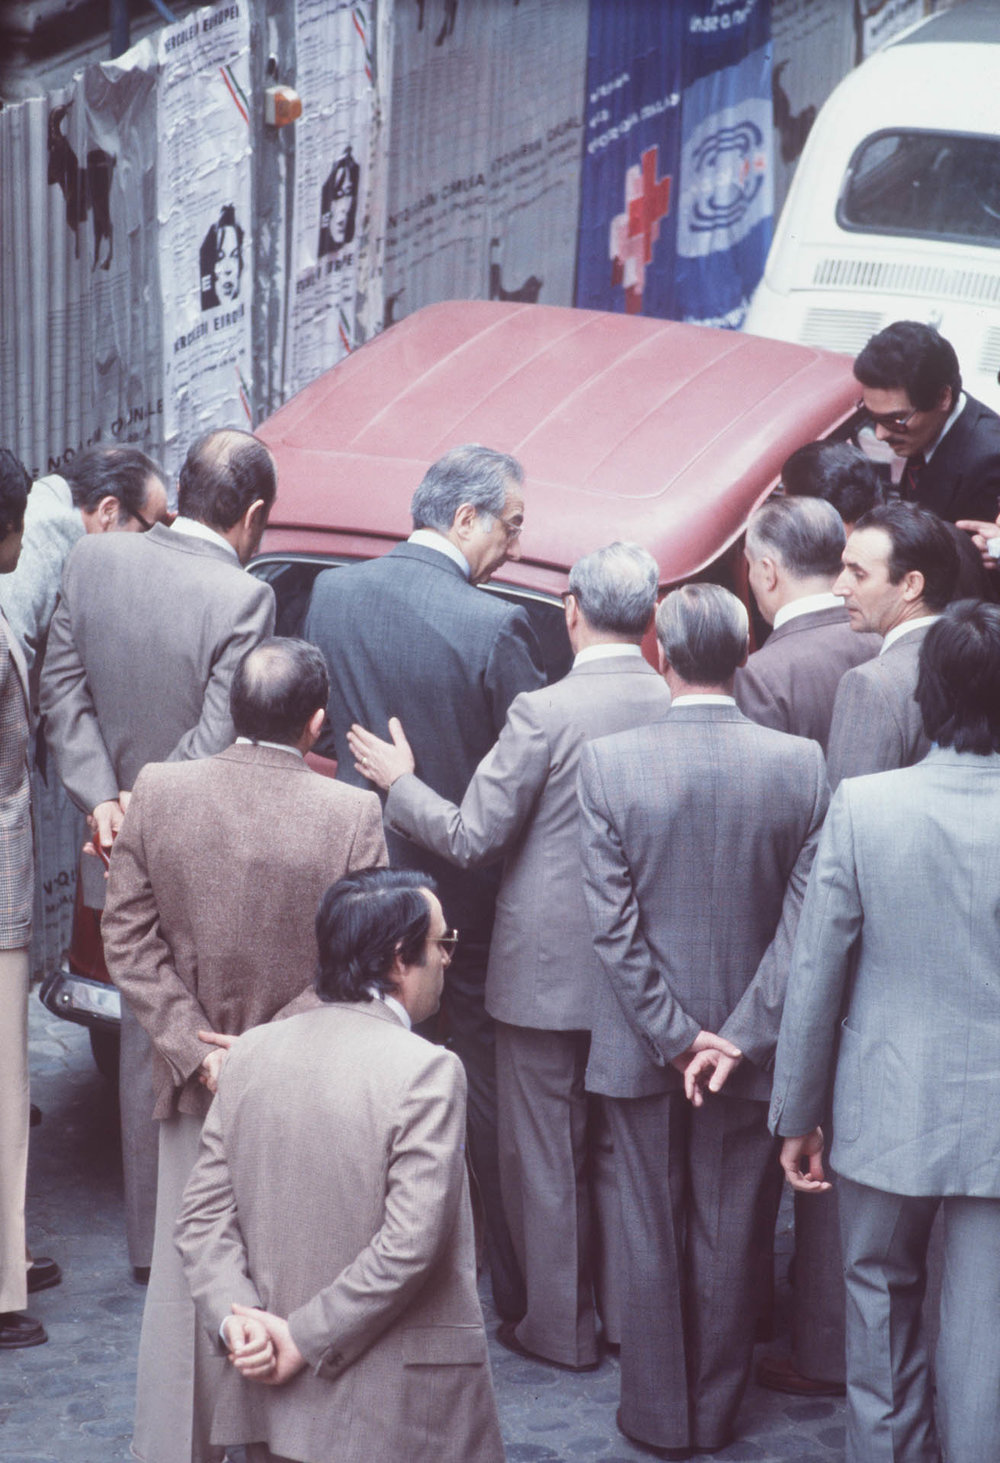 Rome, Italy 9 May 1978 Minister of the Interiors Francesco Cossiga in front of the Red Renault where Aldo Moro's corpse lies.